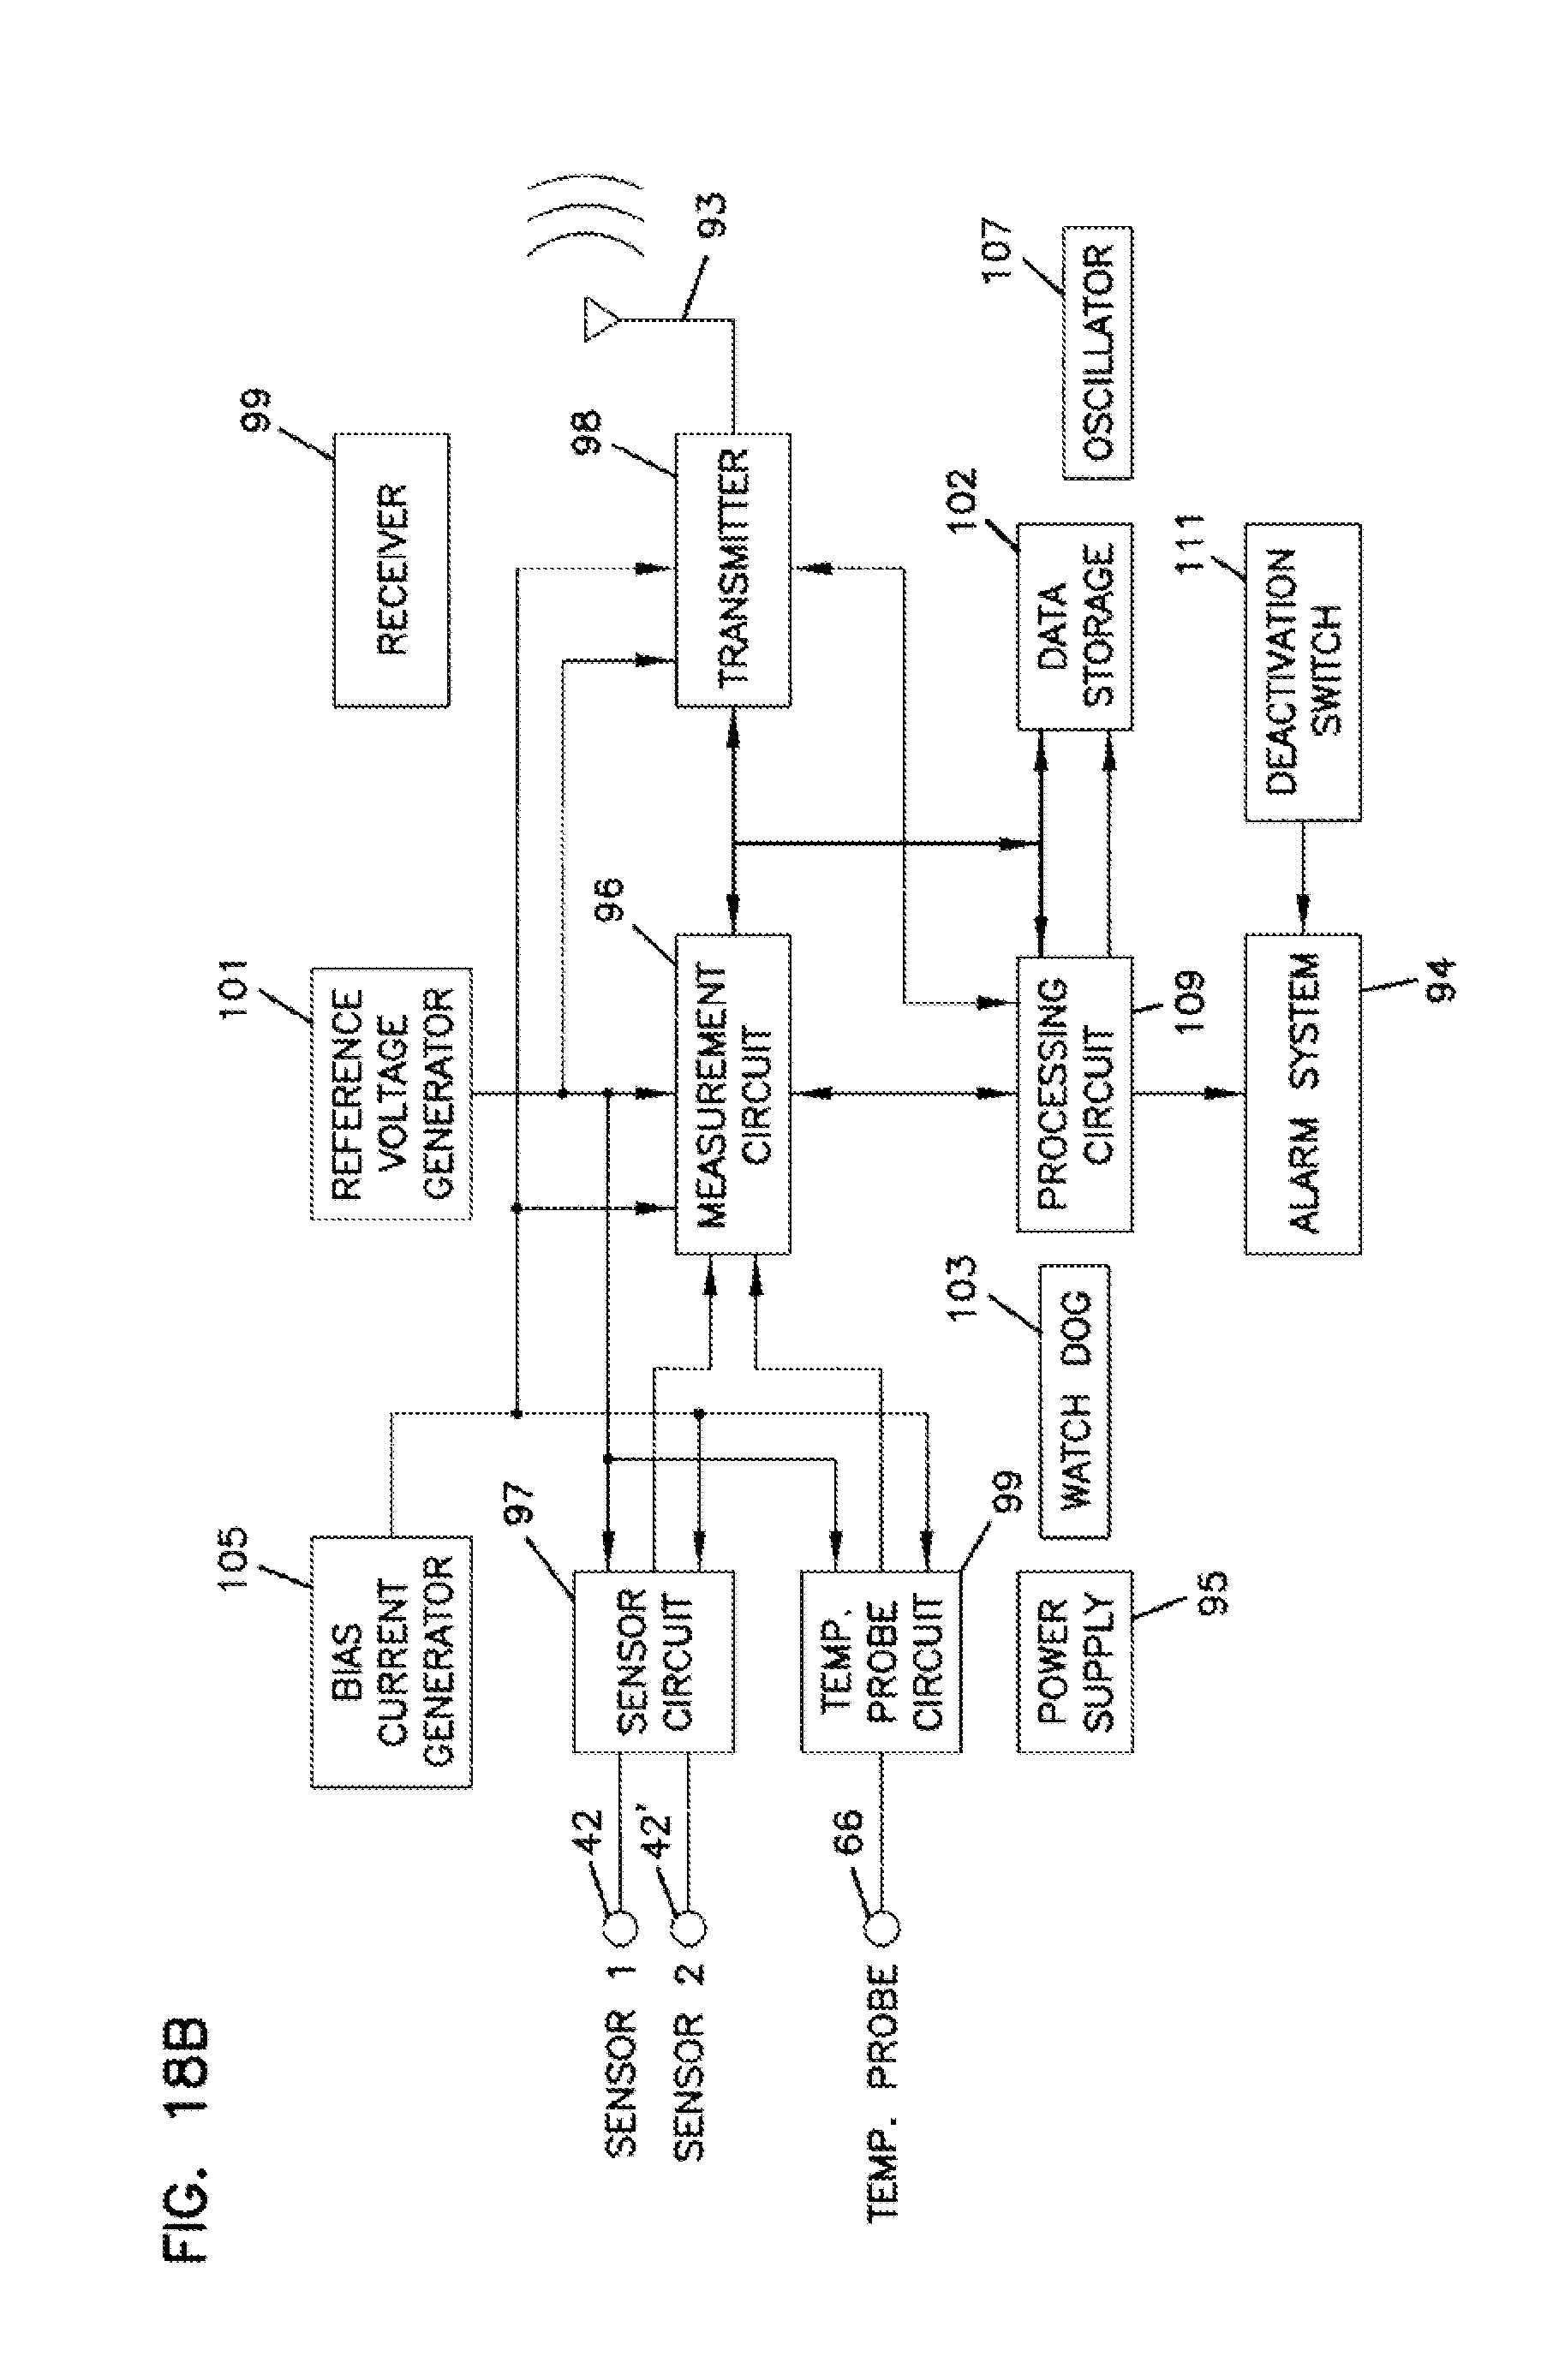 Us20070203408a1 Analyte Monitoring Device And Methods Of Use Door Knob Touch Alarm Circuit Controlcircuit Diagram Google Patents